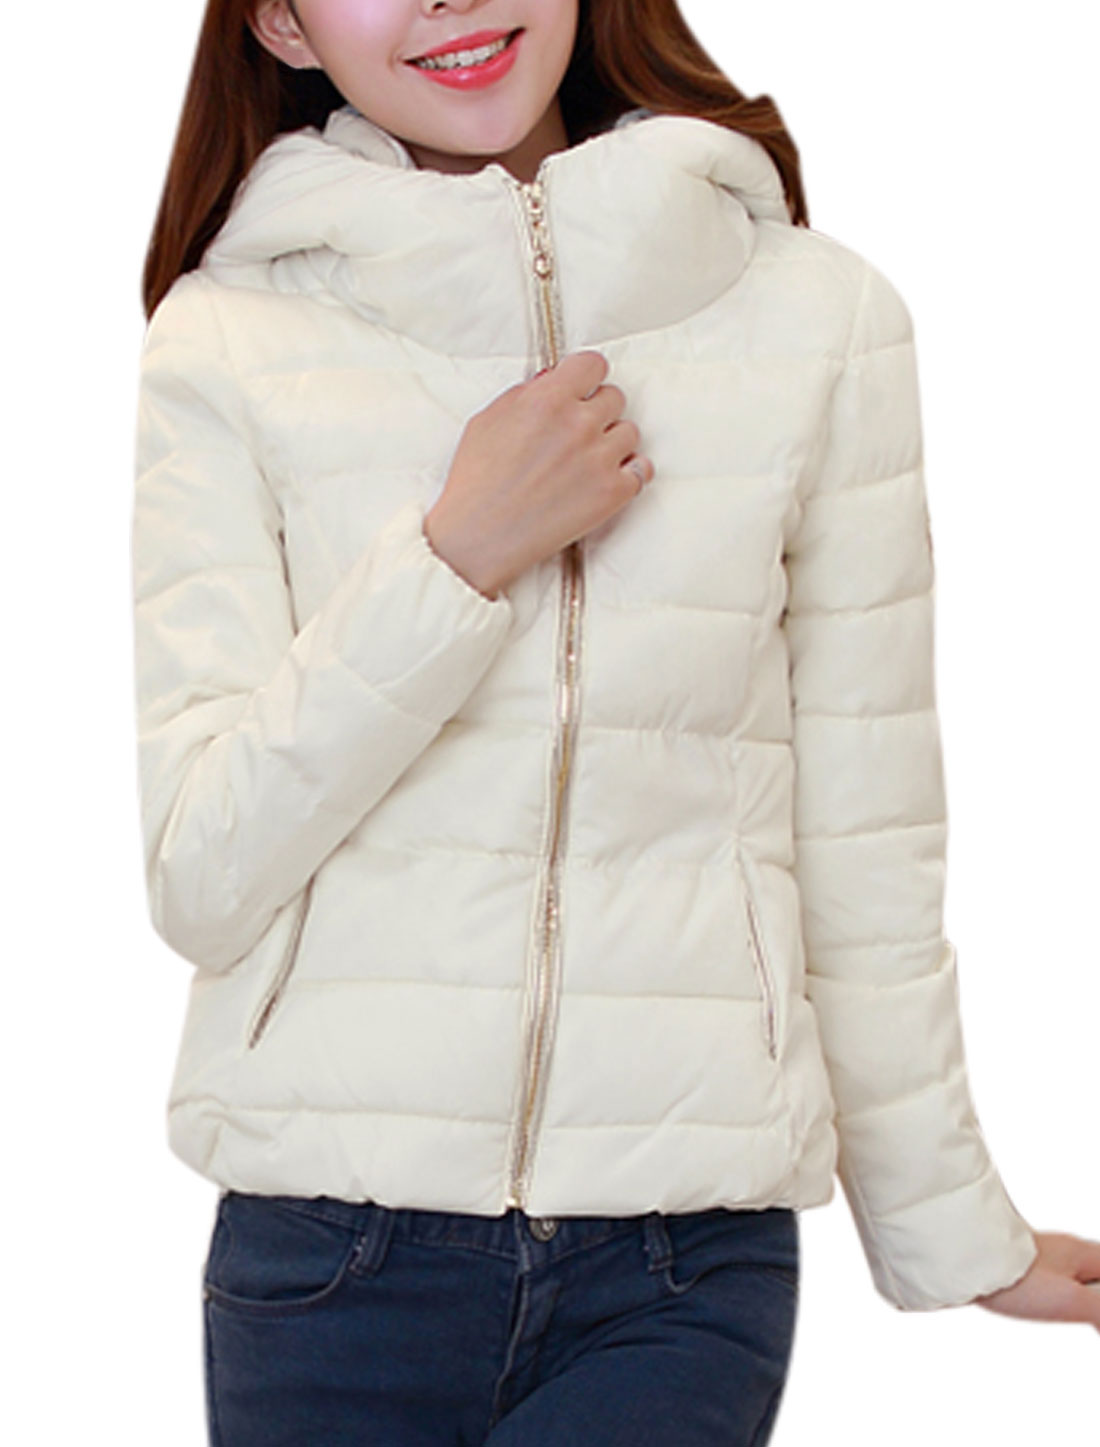 Lady Double Pocket Zip Up Front Off White Hooded Padded Coat L